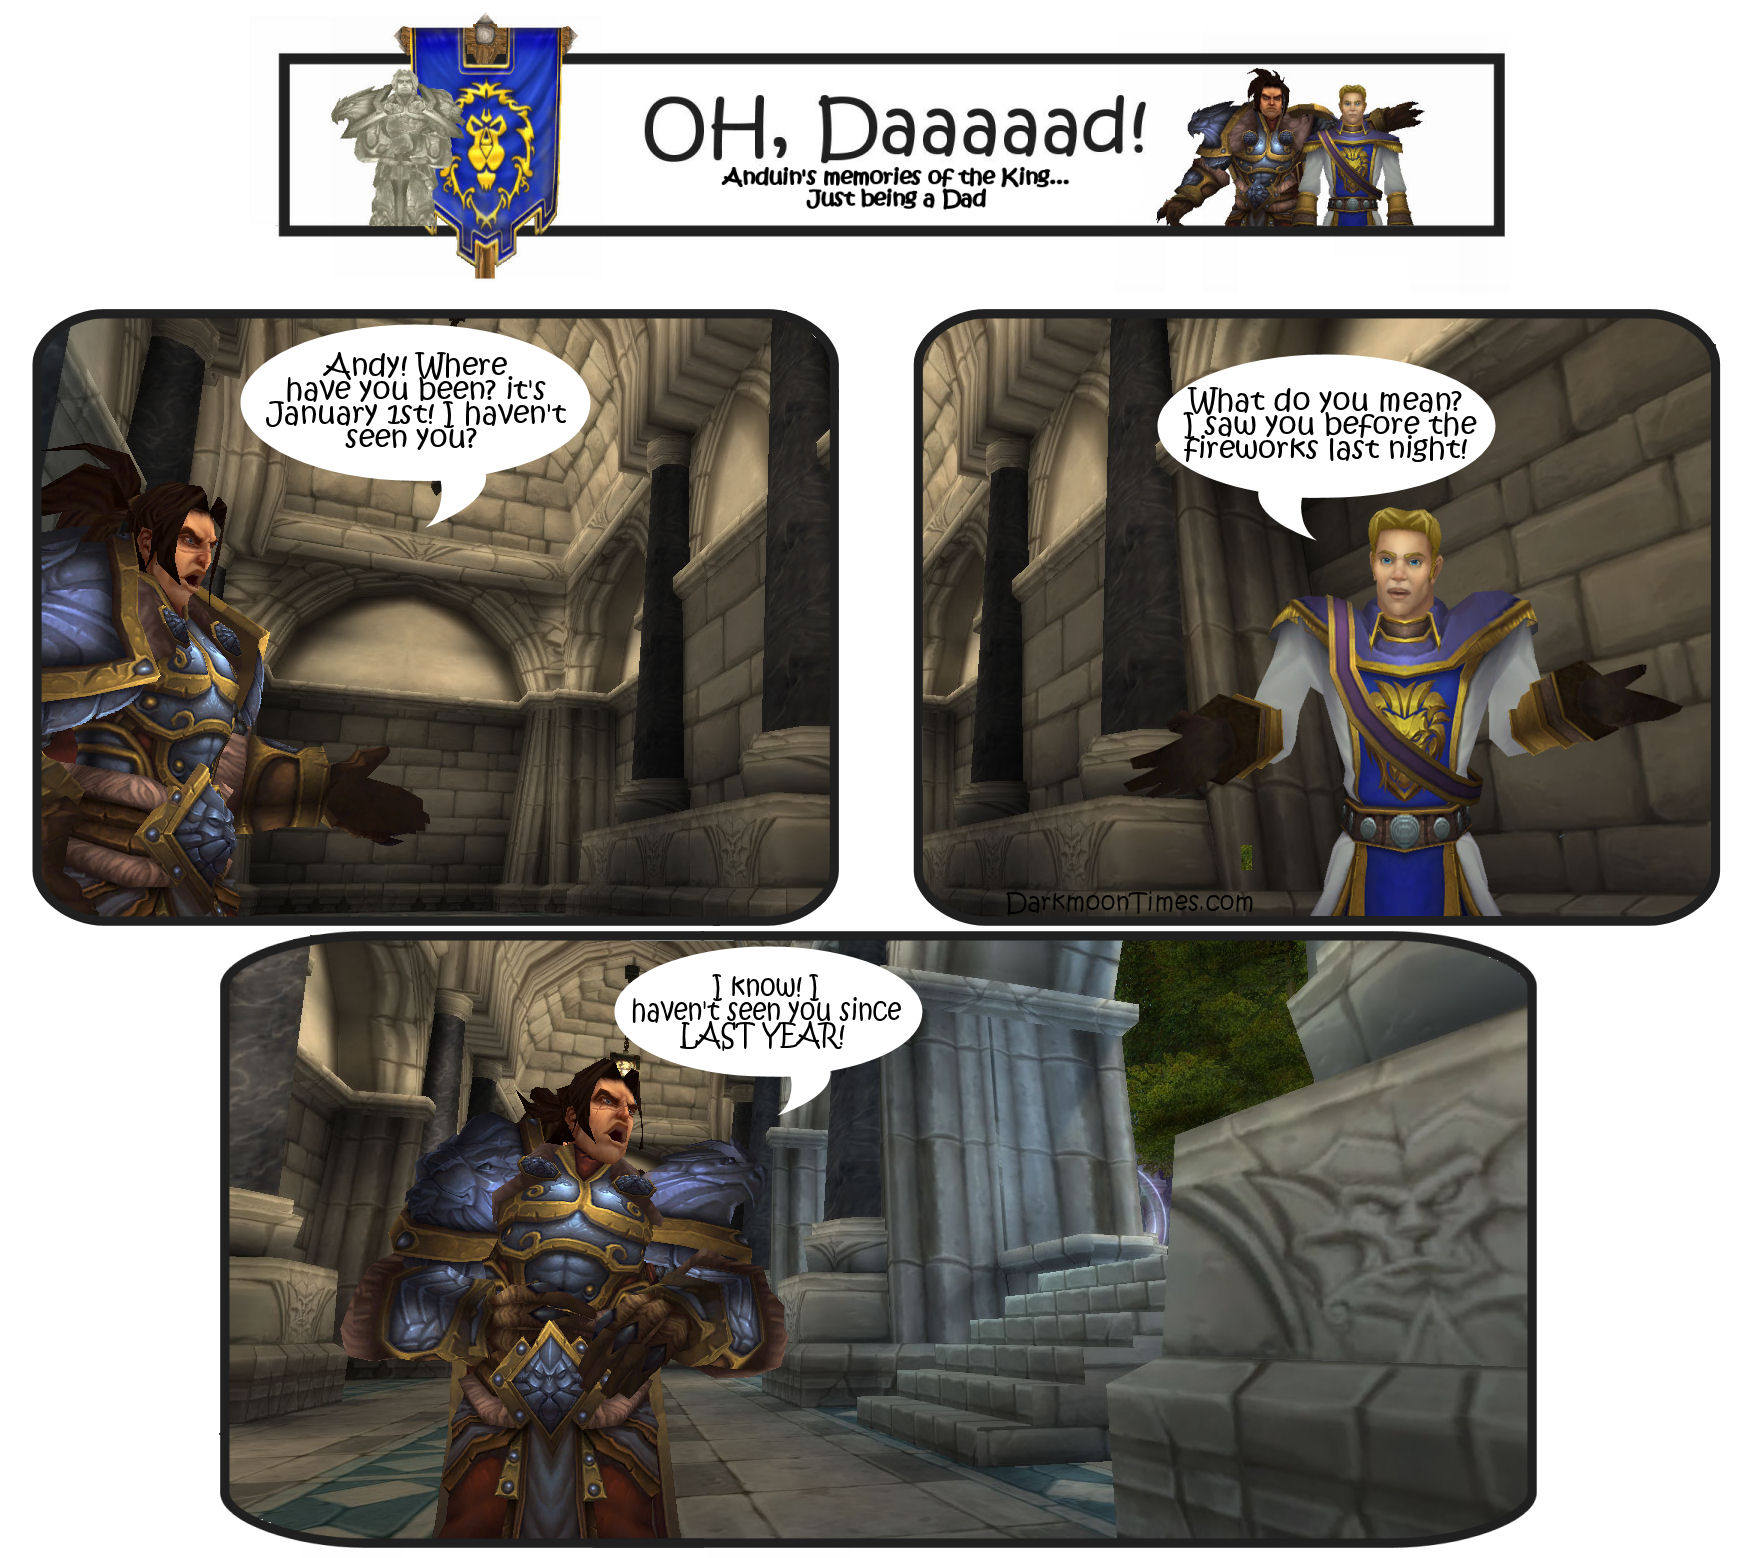 Varian telling Anduin a New Year's dad joke